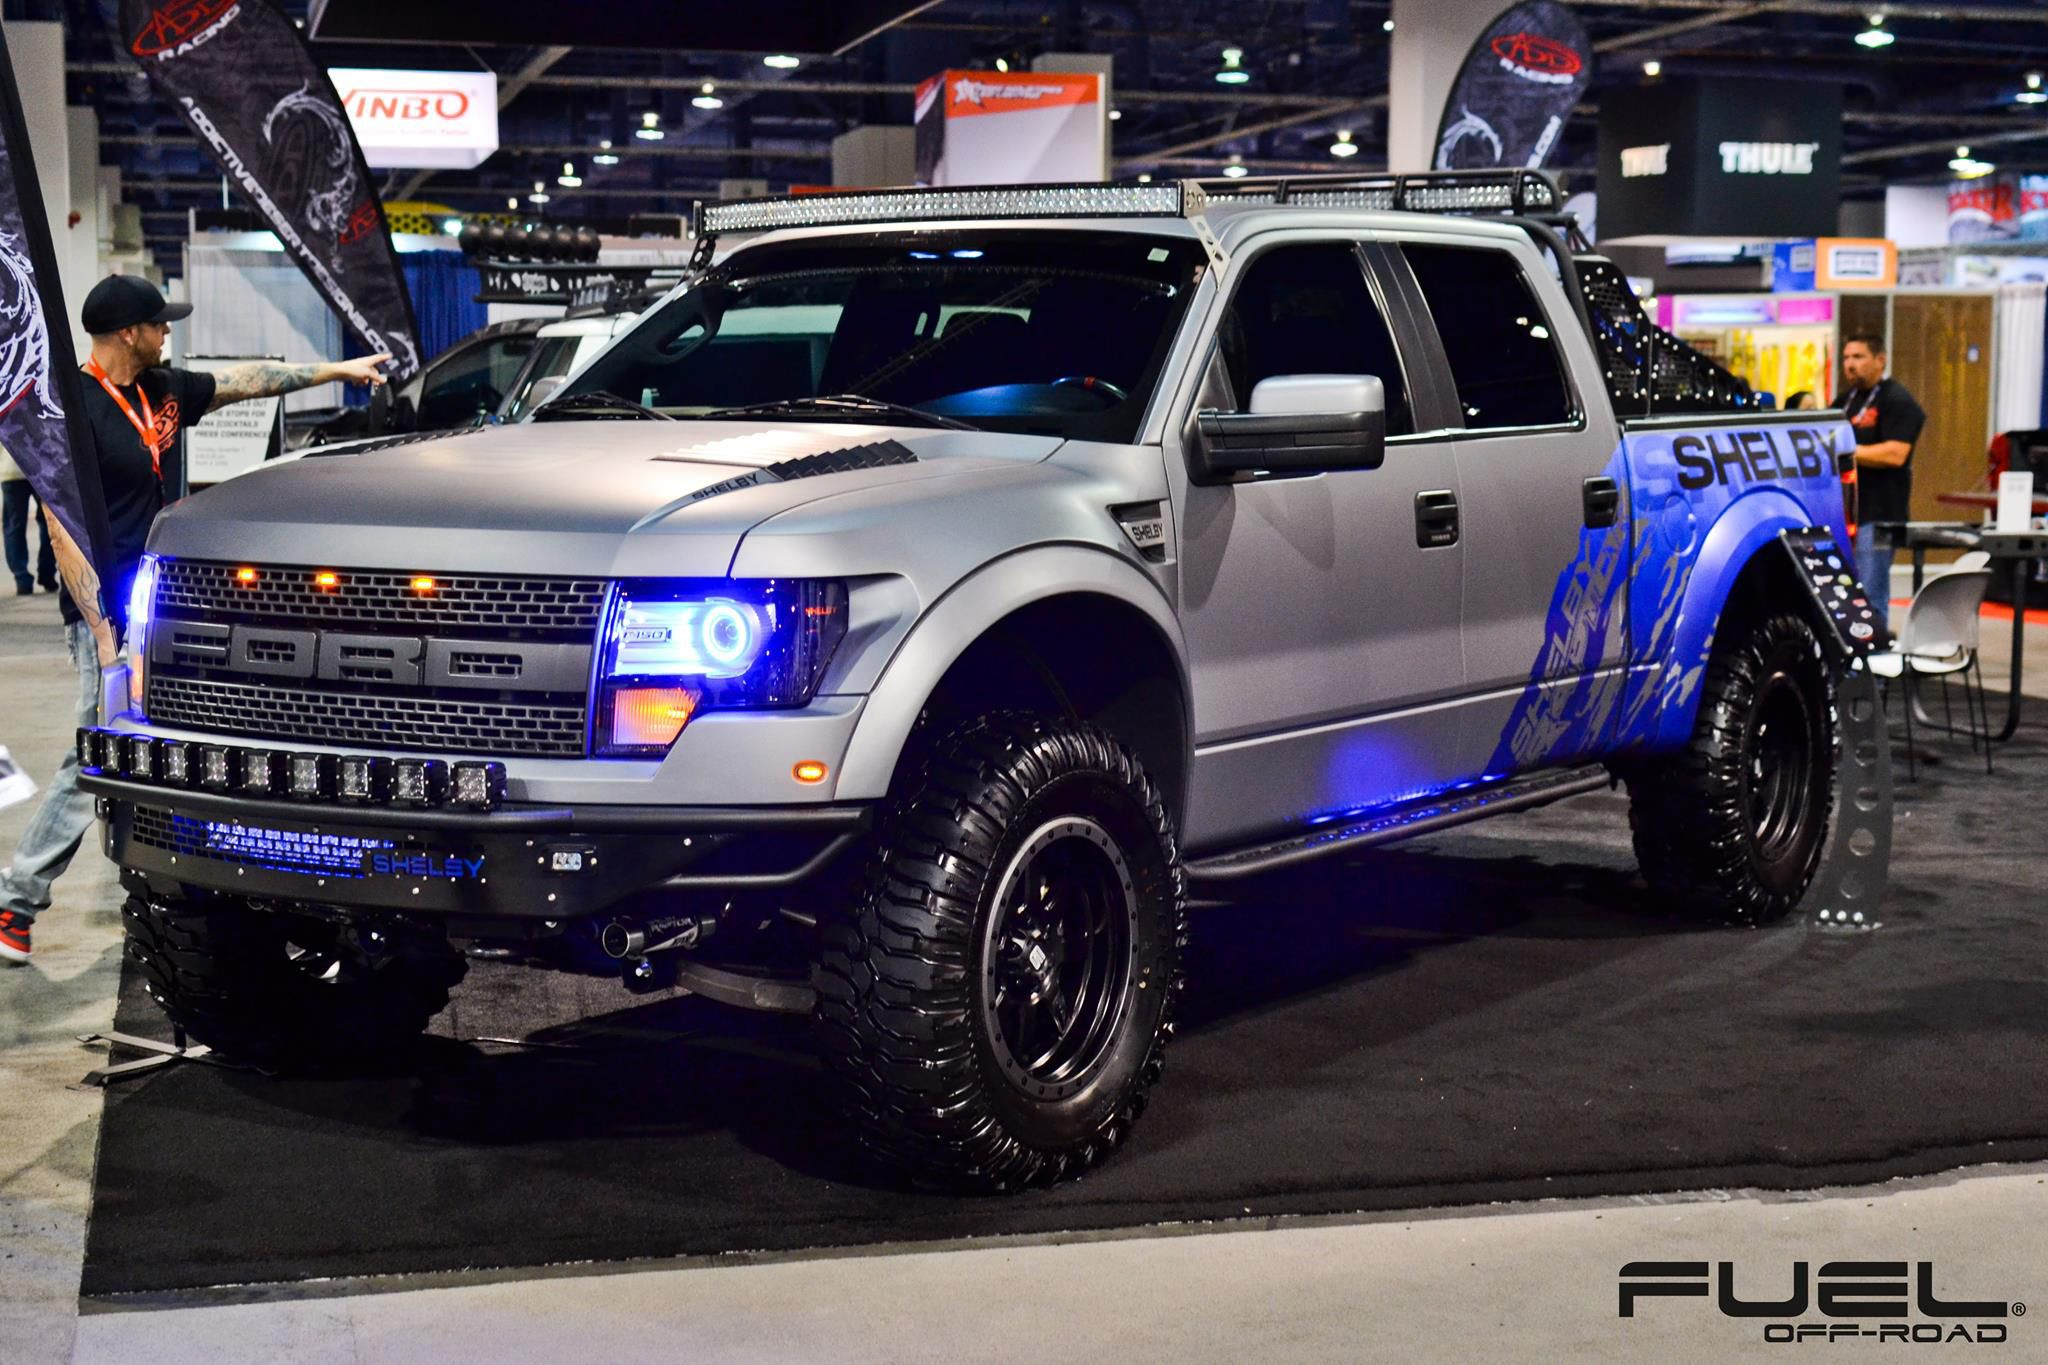 Ford F 150 Raptor With Fuel 1 Piece Wheels Trophy D551